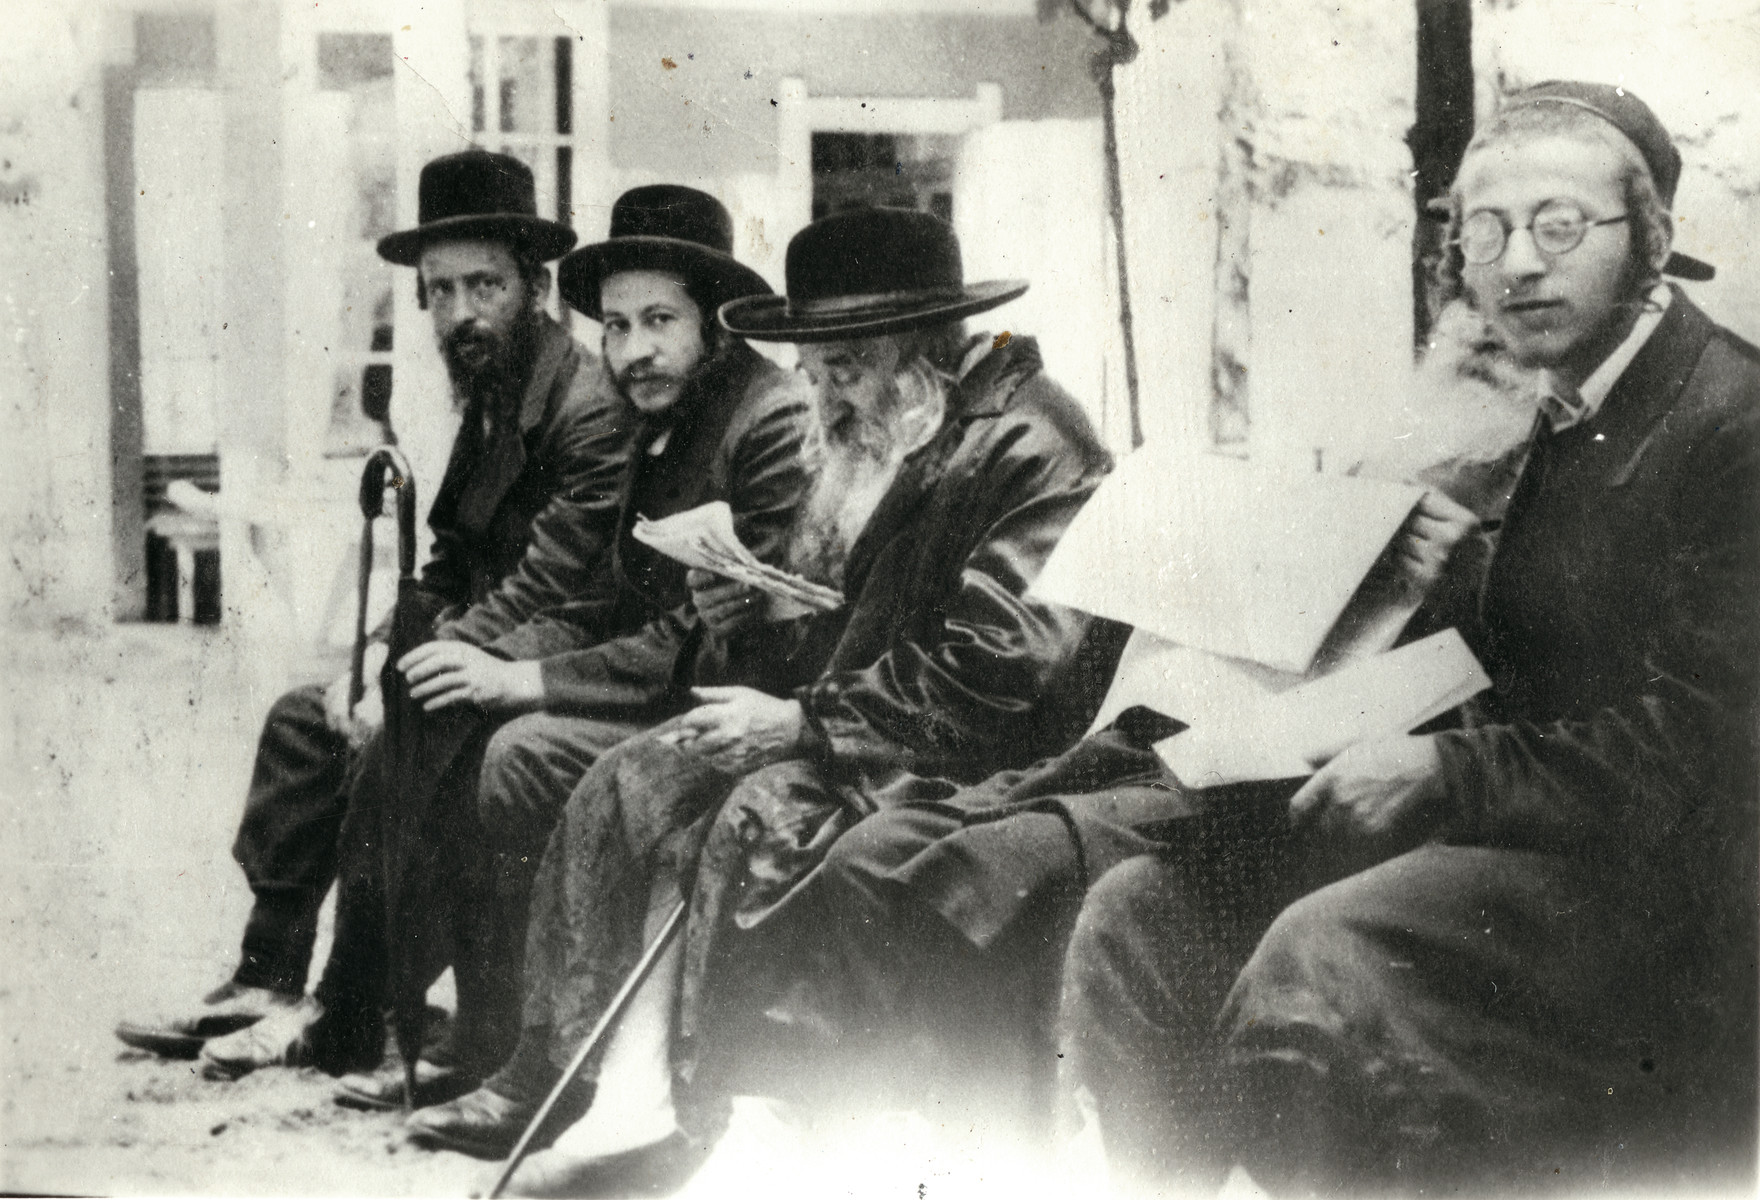 Group portrait of Hassidic Jewish men.  Chaim Braunfeld is pictured on the far left.  The Chernobler rebbe is second from the left and the Tchover Rabbi is third from the left.  Rabbi, Haim from Sanz and his grandson are on the right.